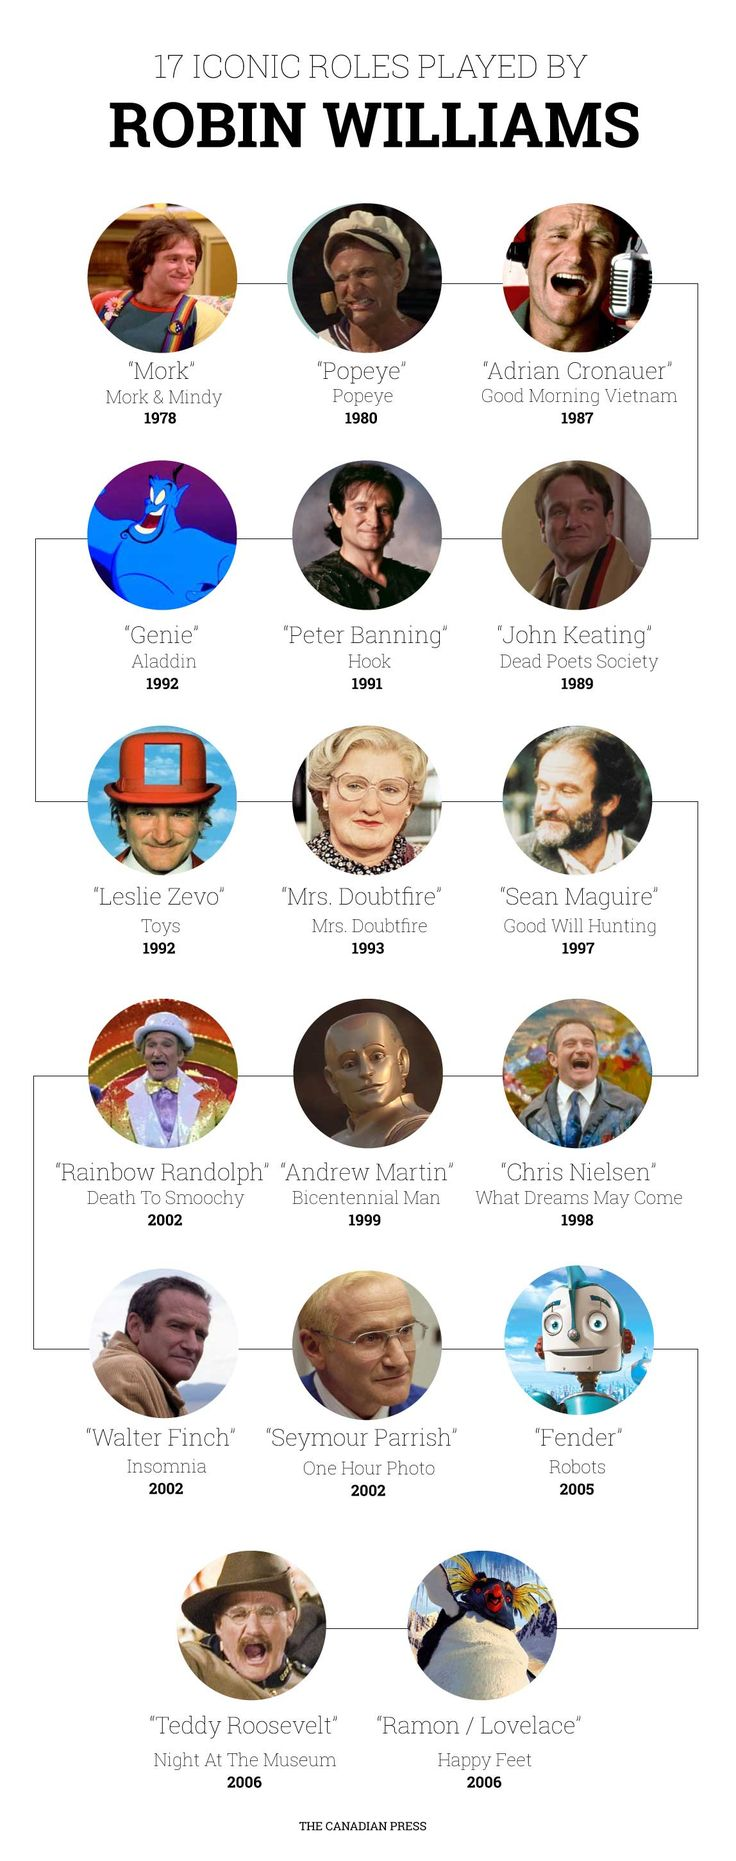 Robin Williams - Iconic roles